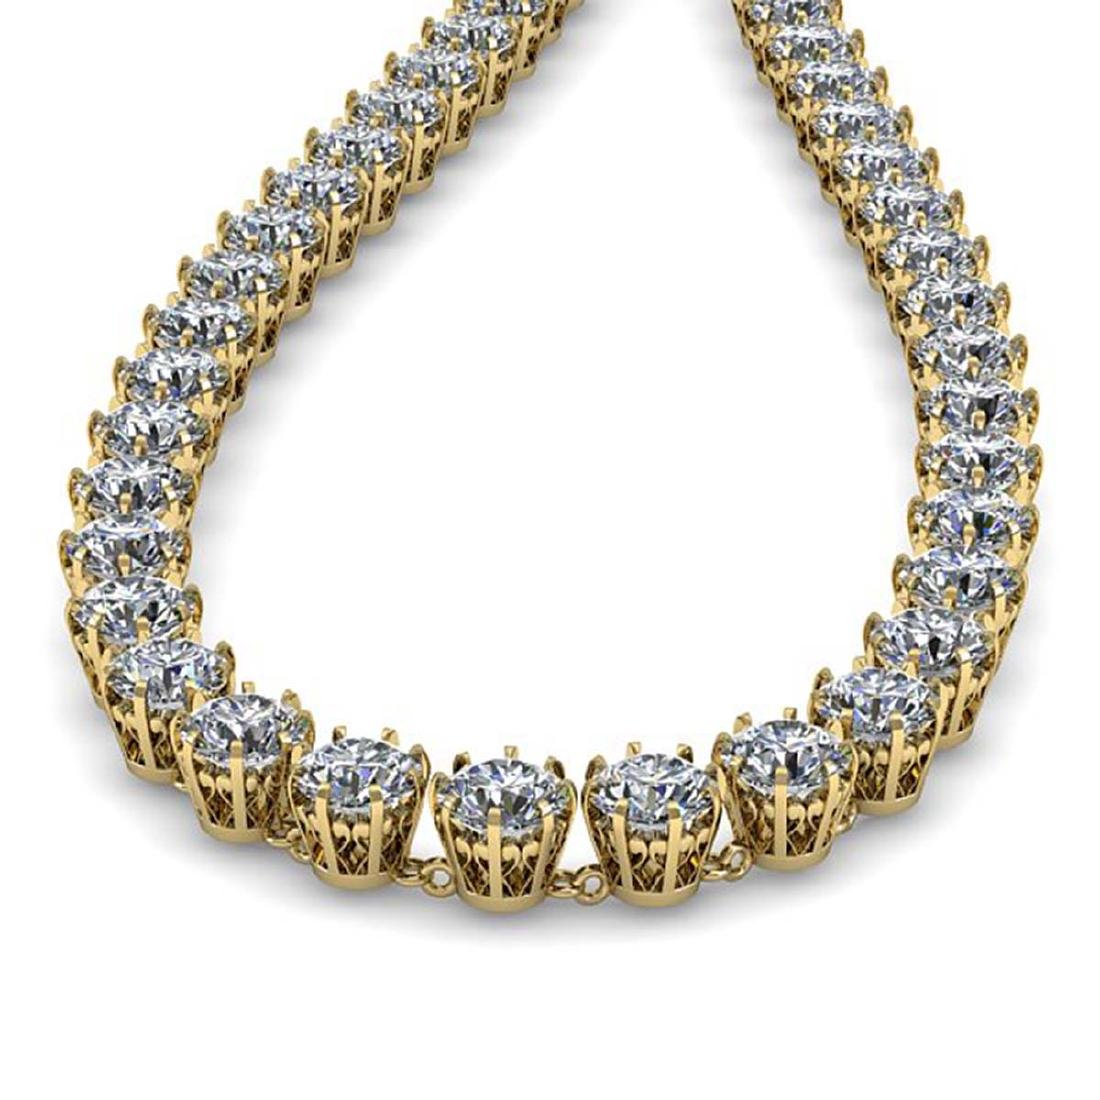 30 ctw SI Diamond Necklace 14K Yellow Gold - - 2